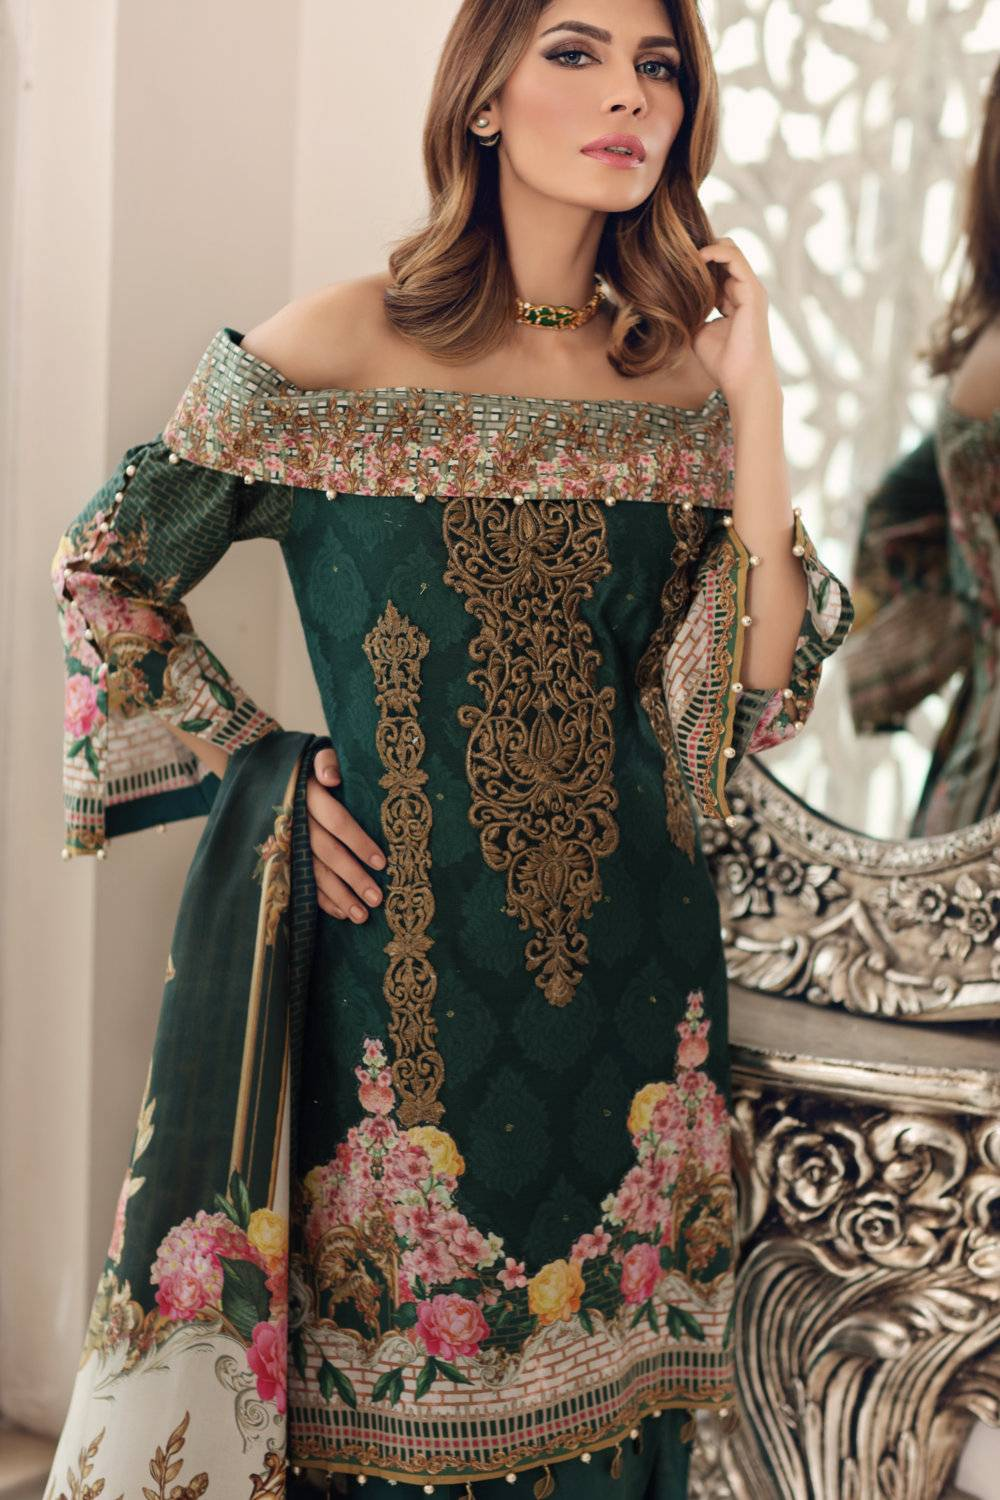 Noor by Saadia Asad Embroidered Cotton Unstitched 3 Piece Suit SA17E2 09